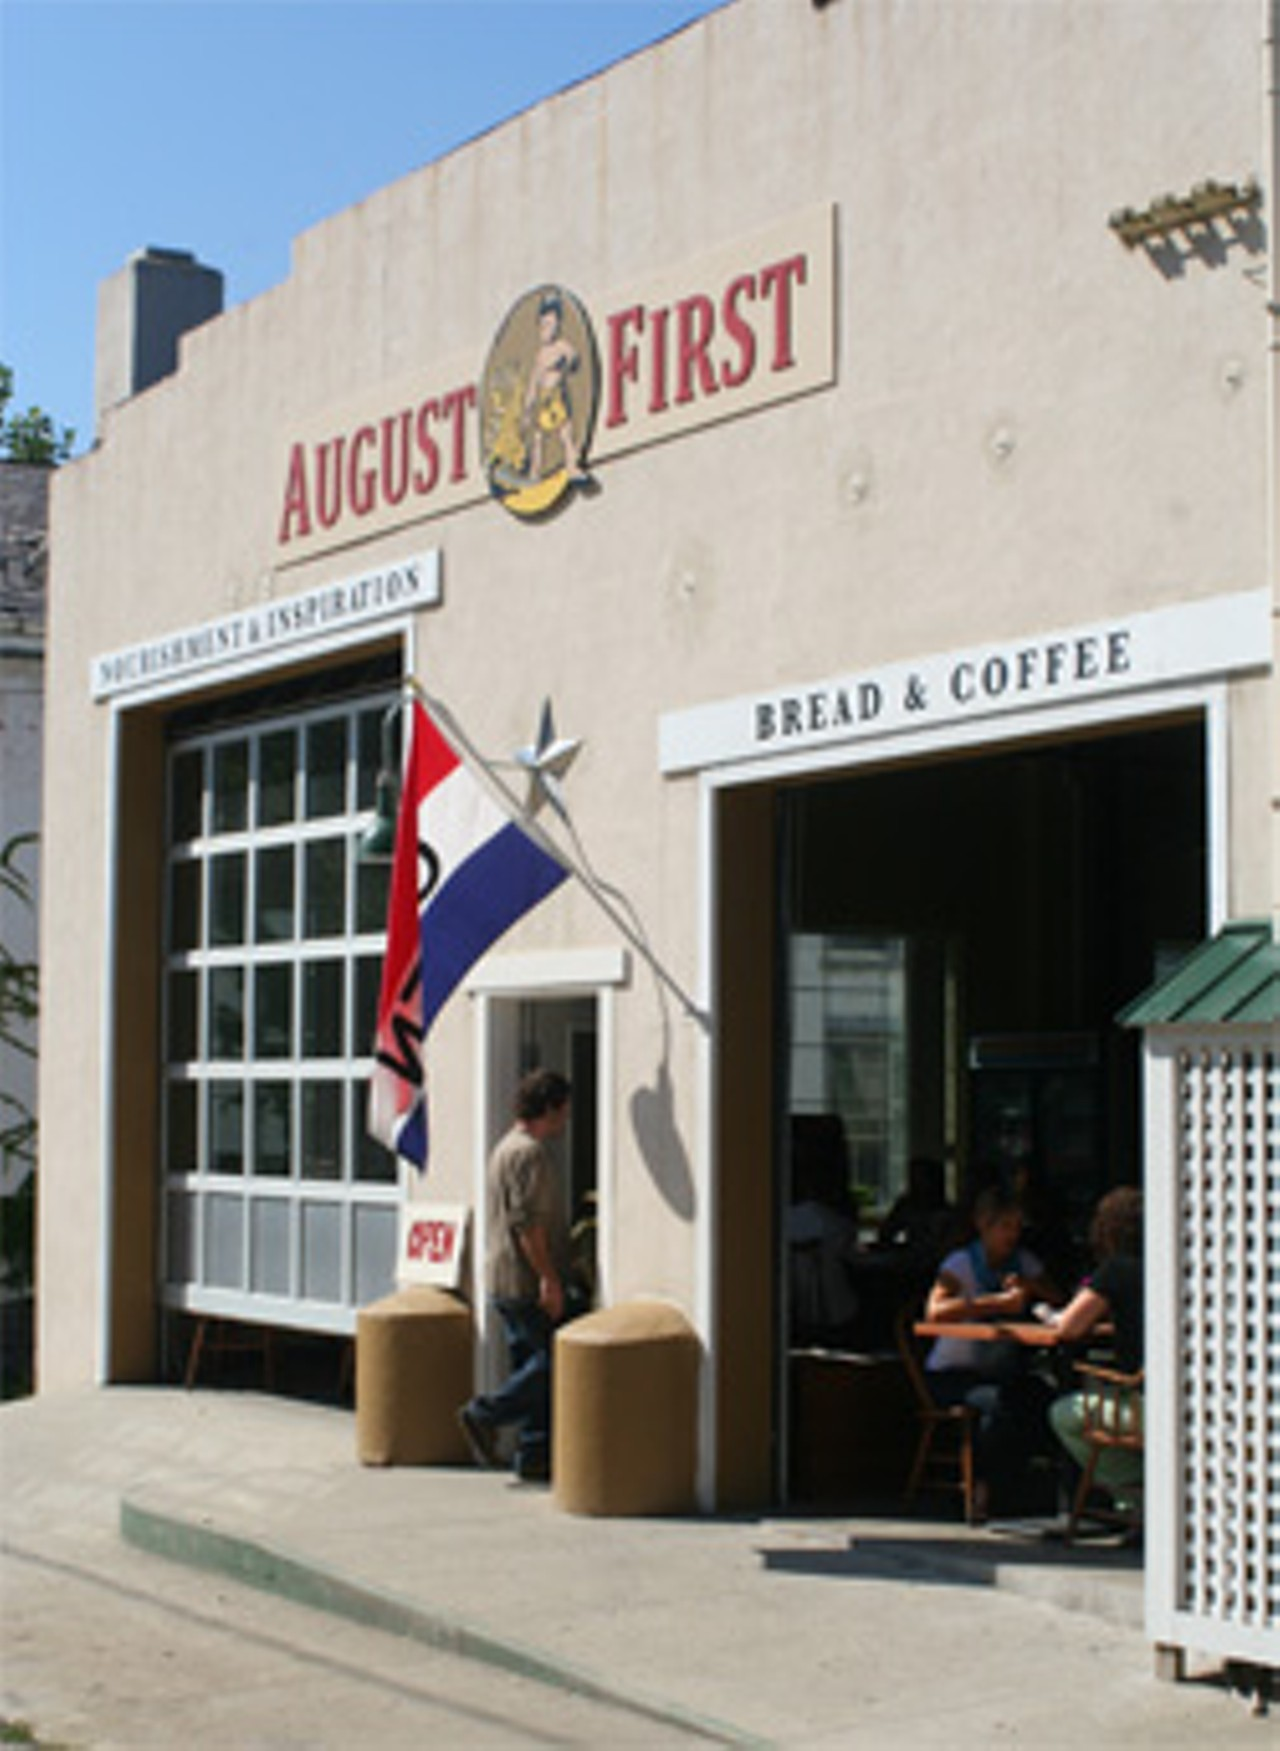 August First Bakery & Café Burlington